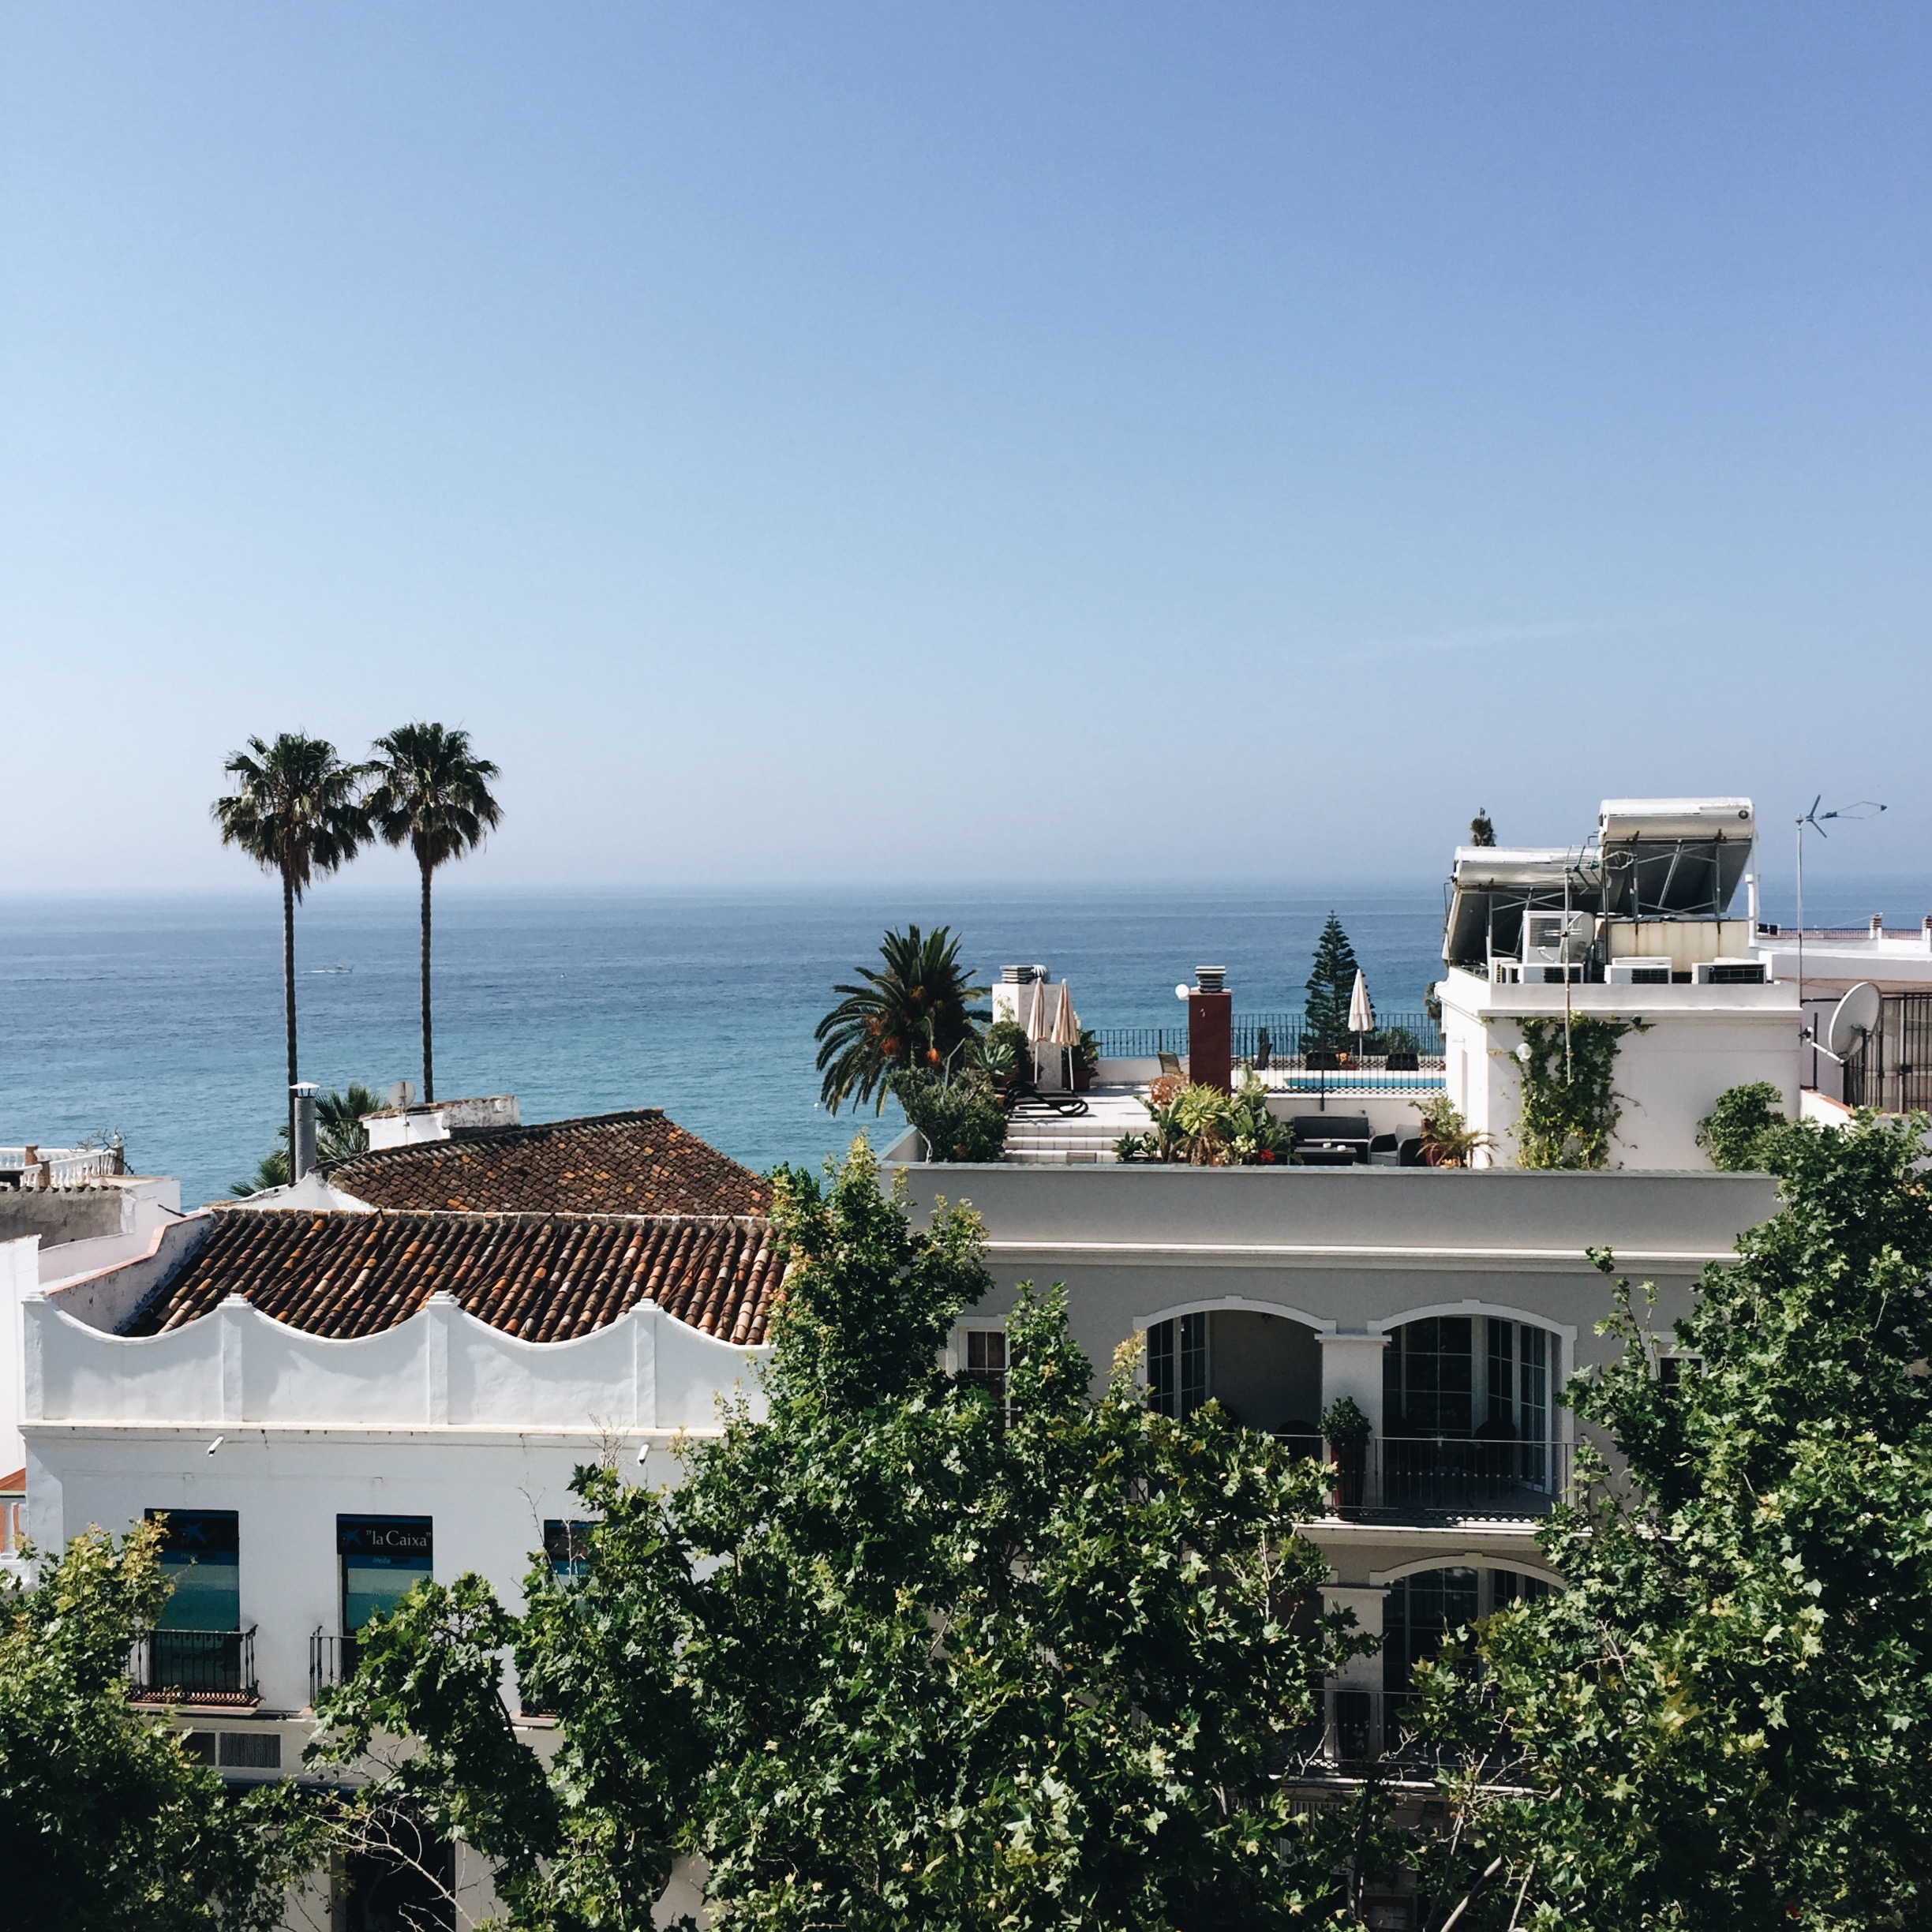 THE VIEW FROM THE ROOF POOL AT HOTEL PLAZA CAVANA